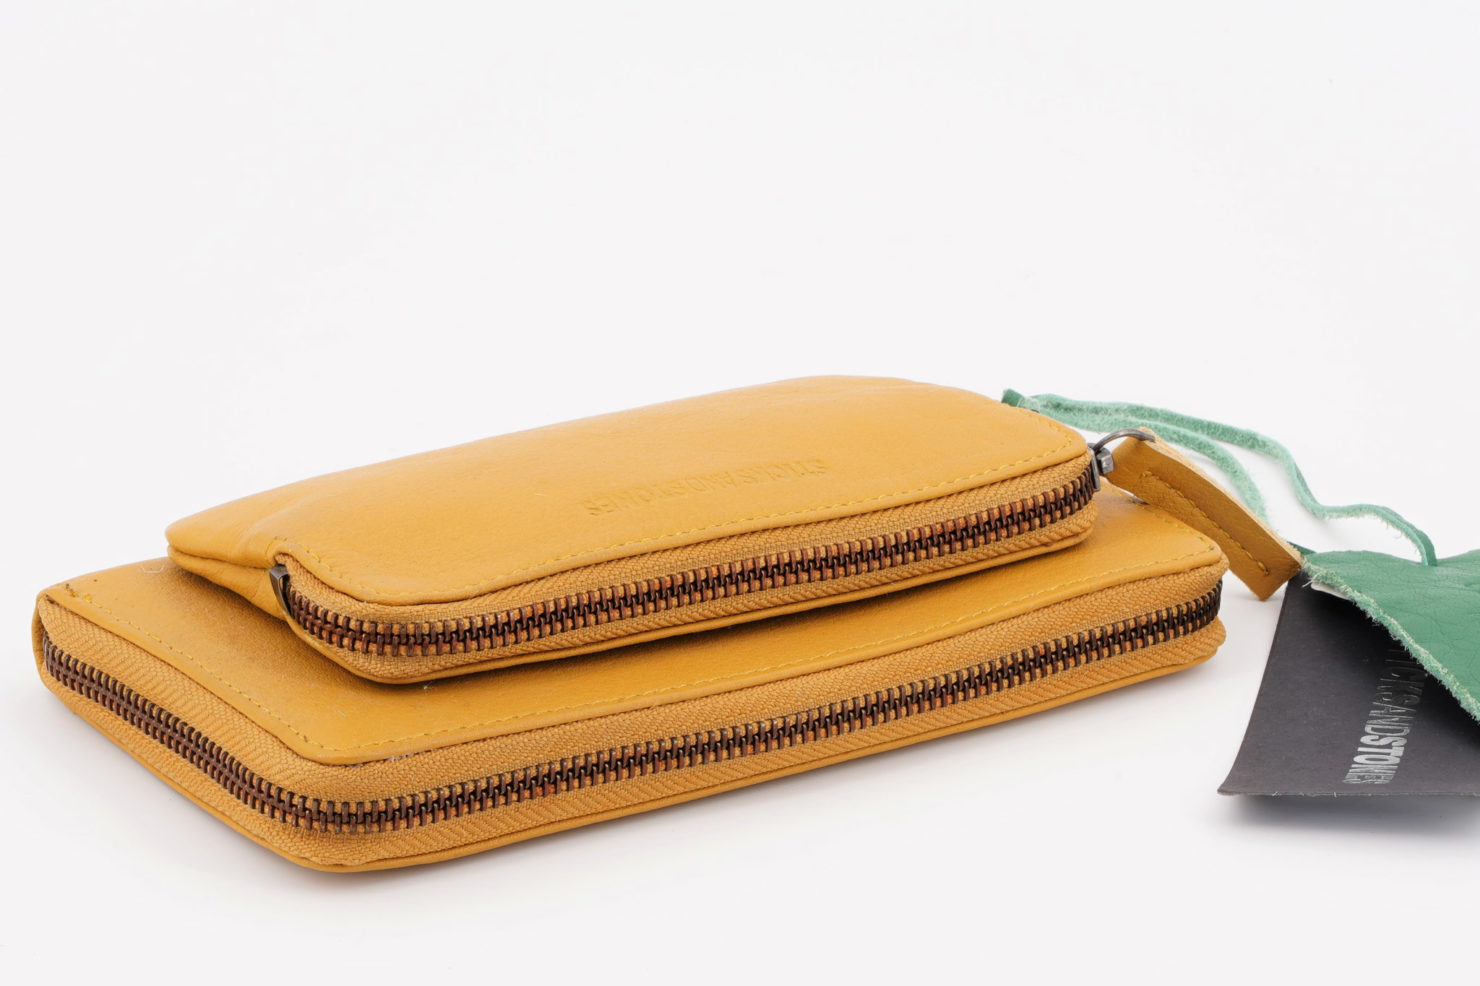 CALIFORNIA WALLET - BUFF WASHED - STICKSANDSTONES HONEY YELLOW